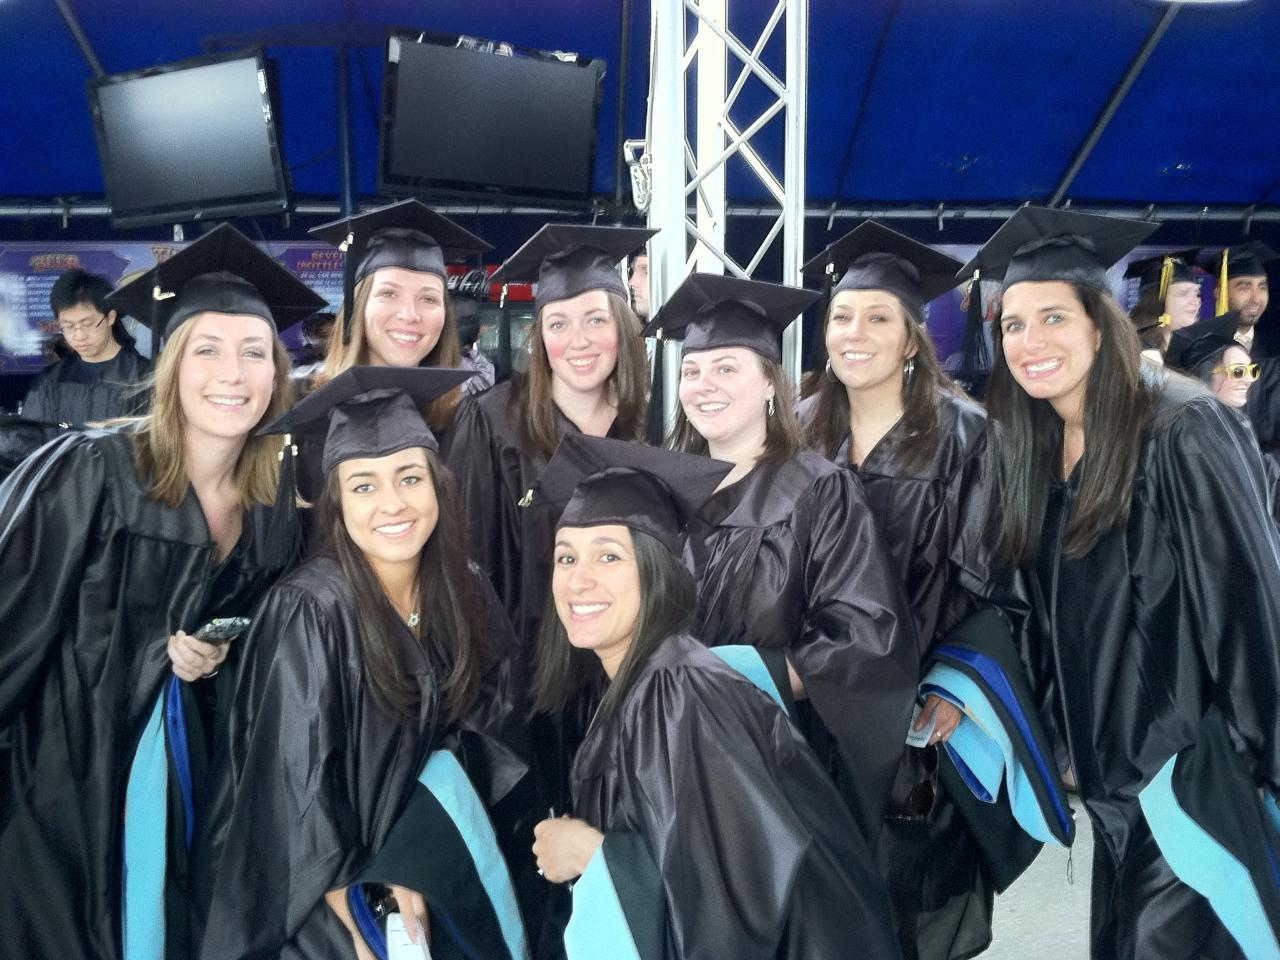 2013 graduates at the Bank of America Pavilion